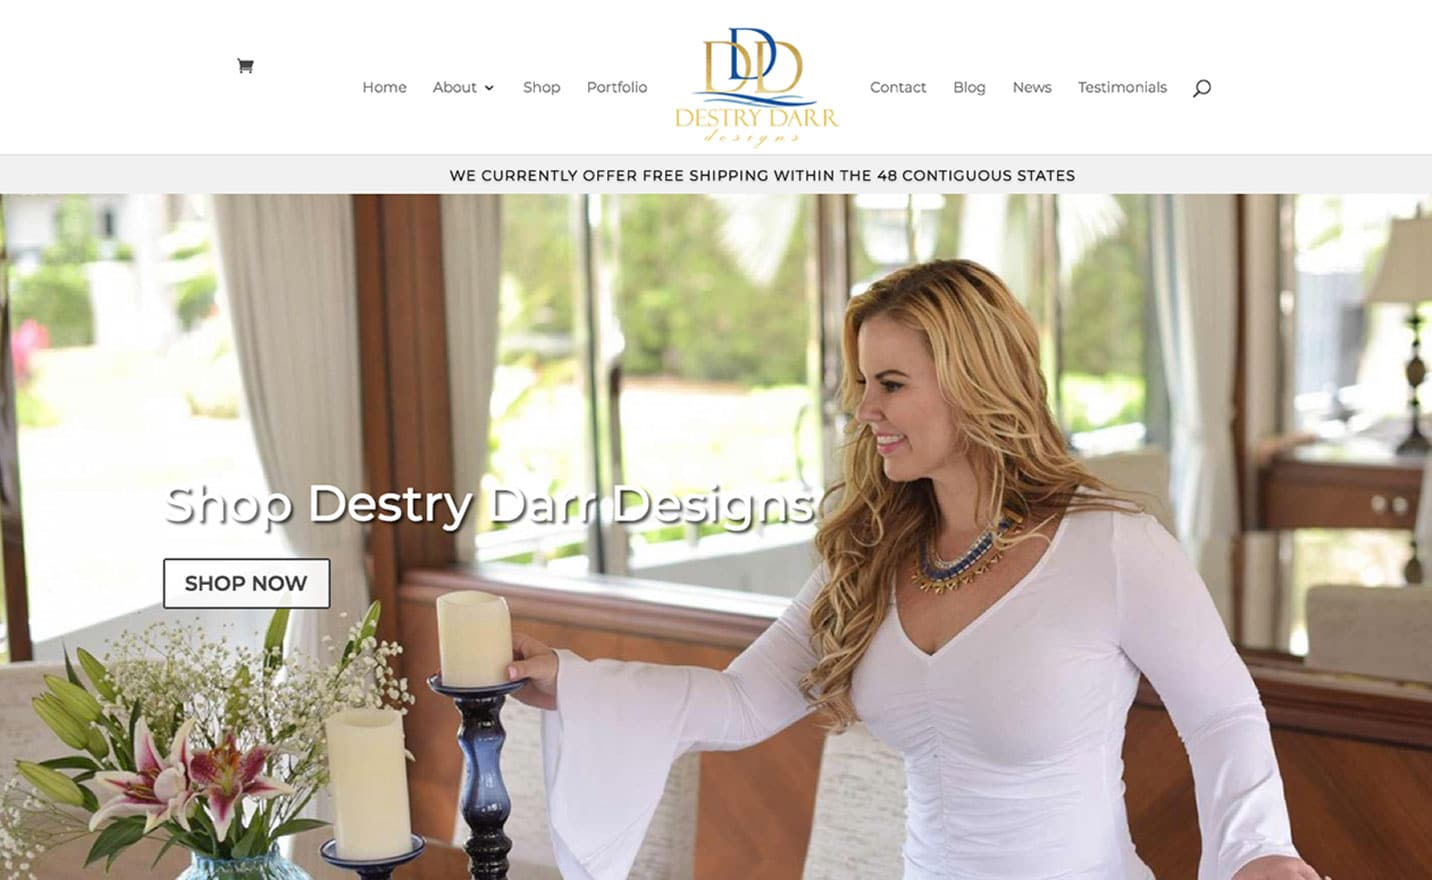 Shop Destry Darr Designs